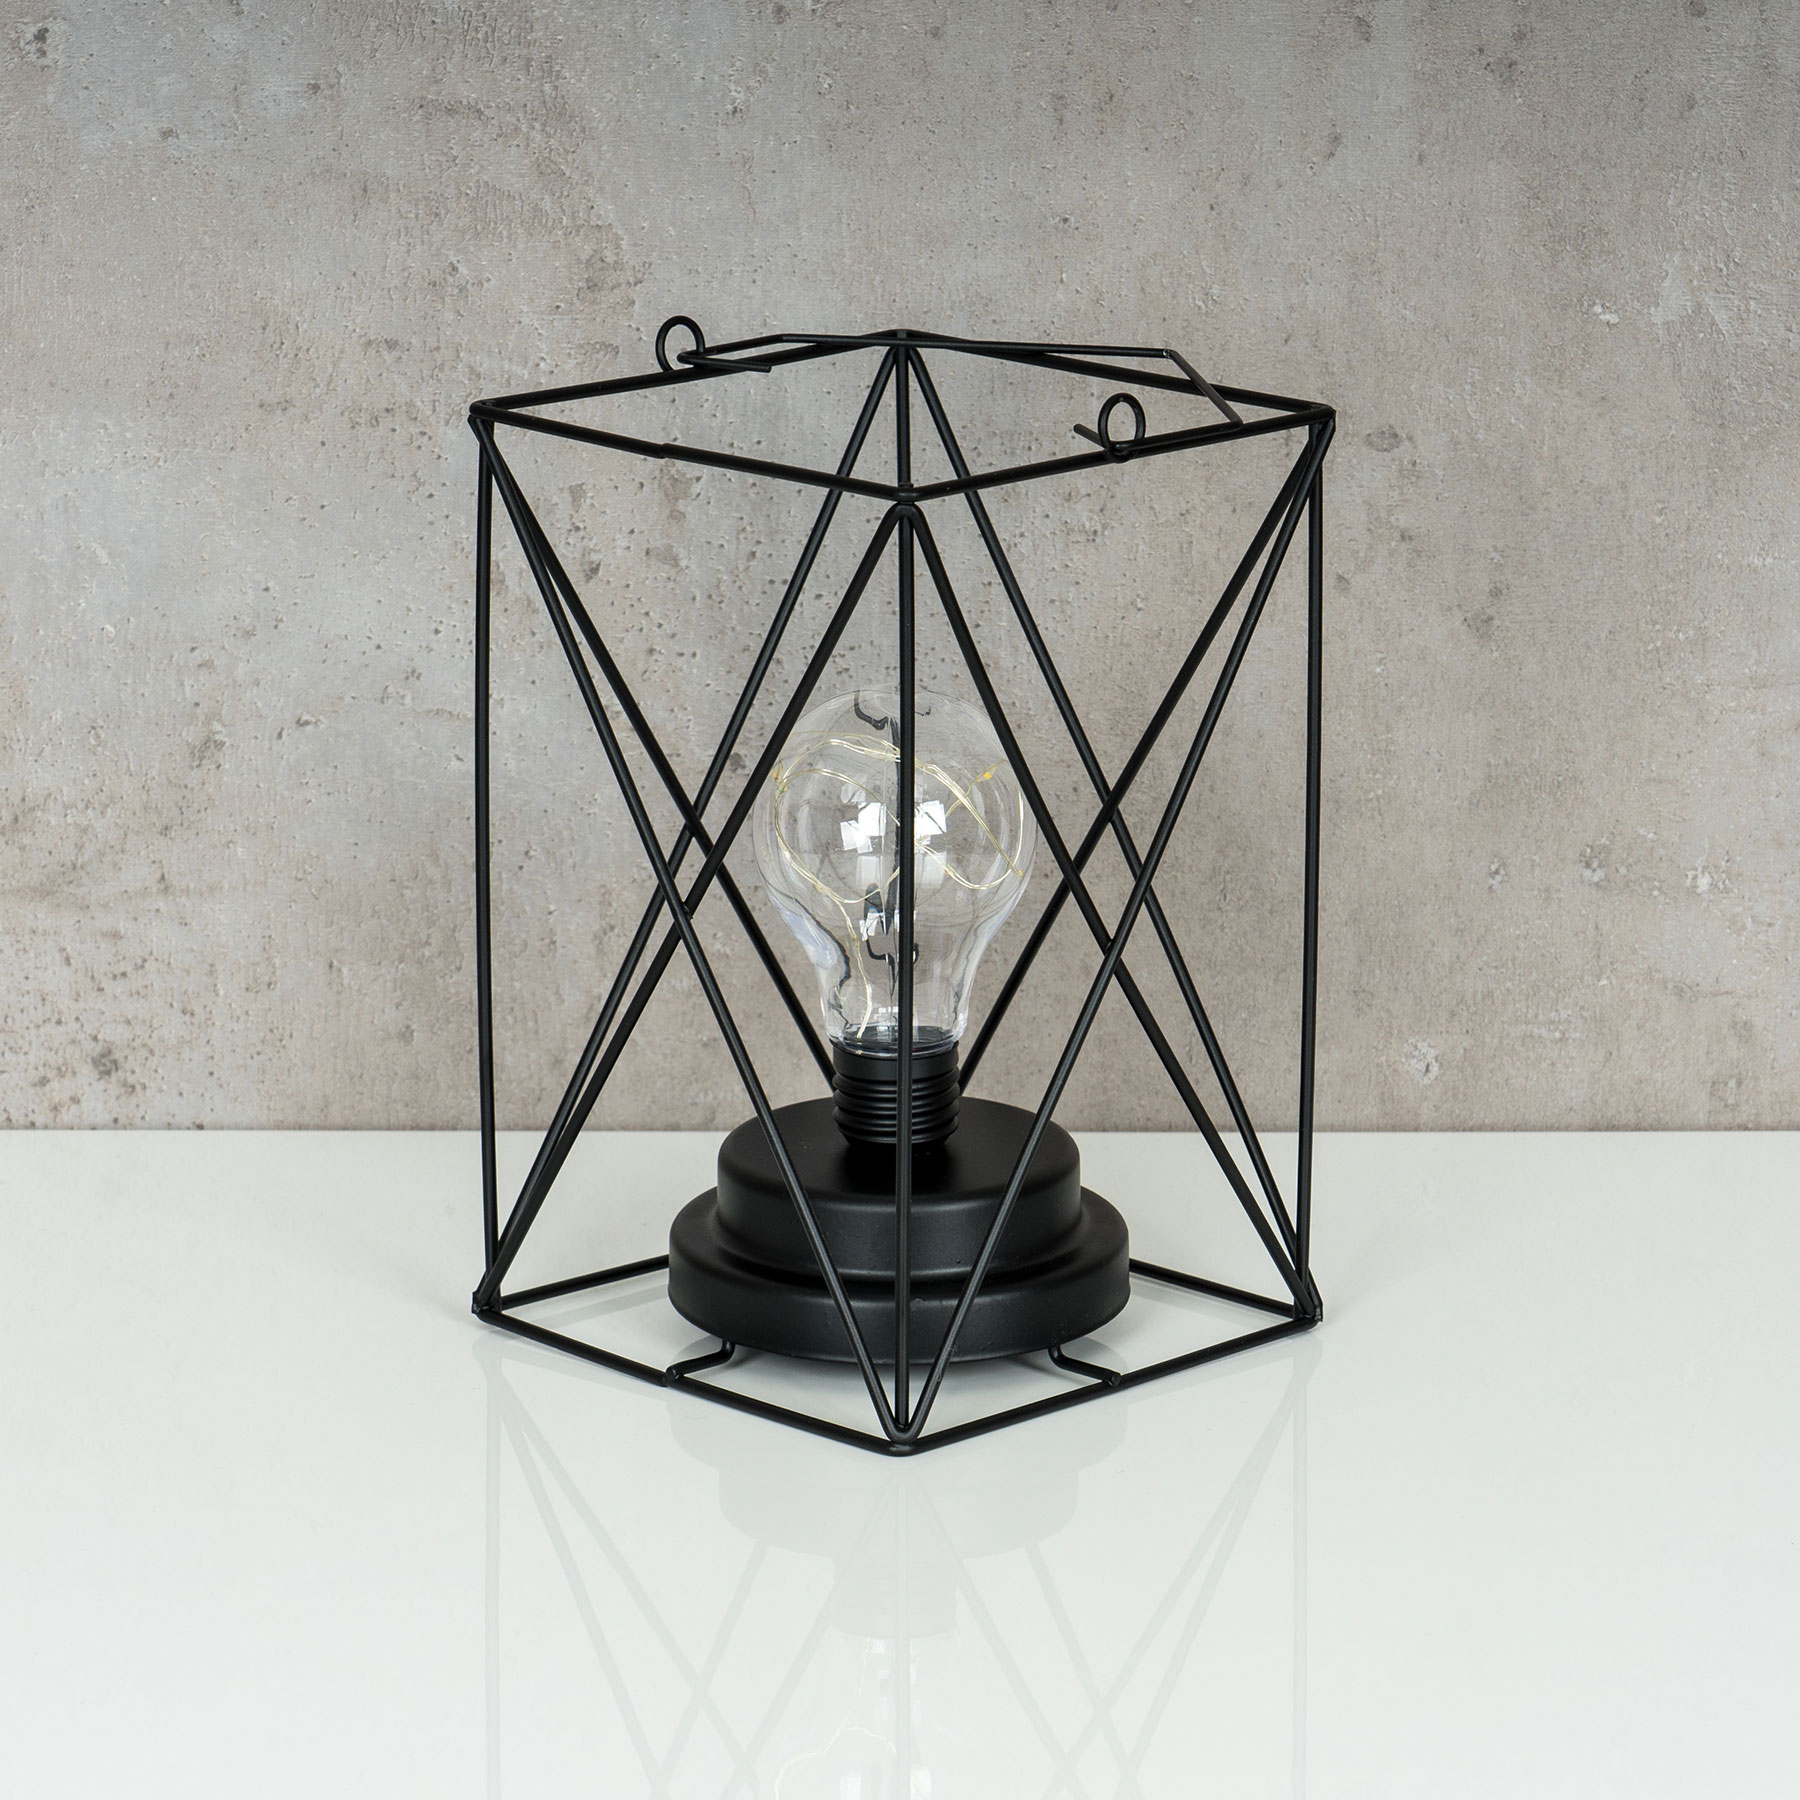 Lampe LED Metall Schwarz 12x19cm Industrie Leuchte Industrial Design ...